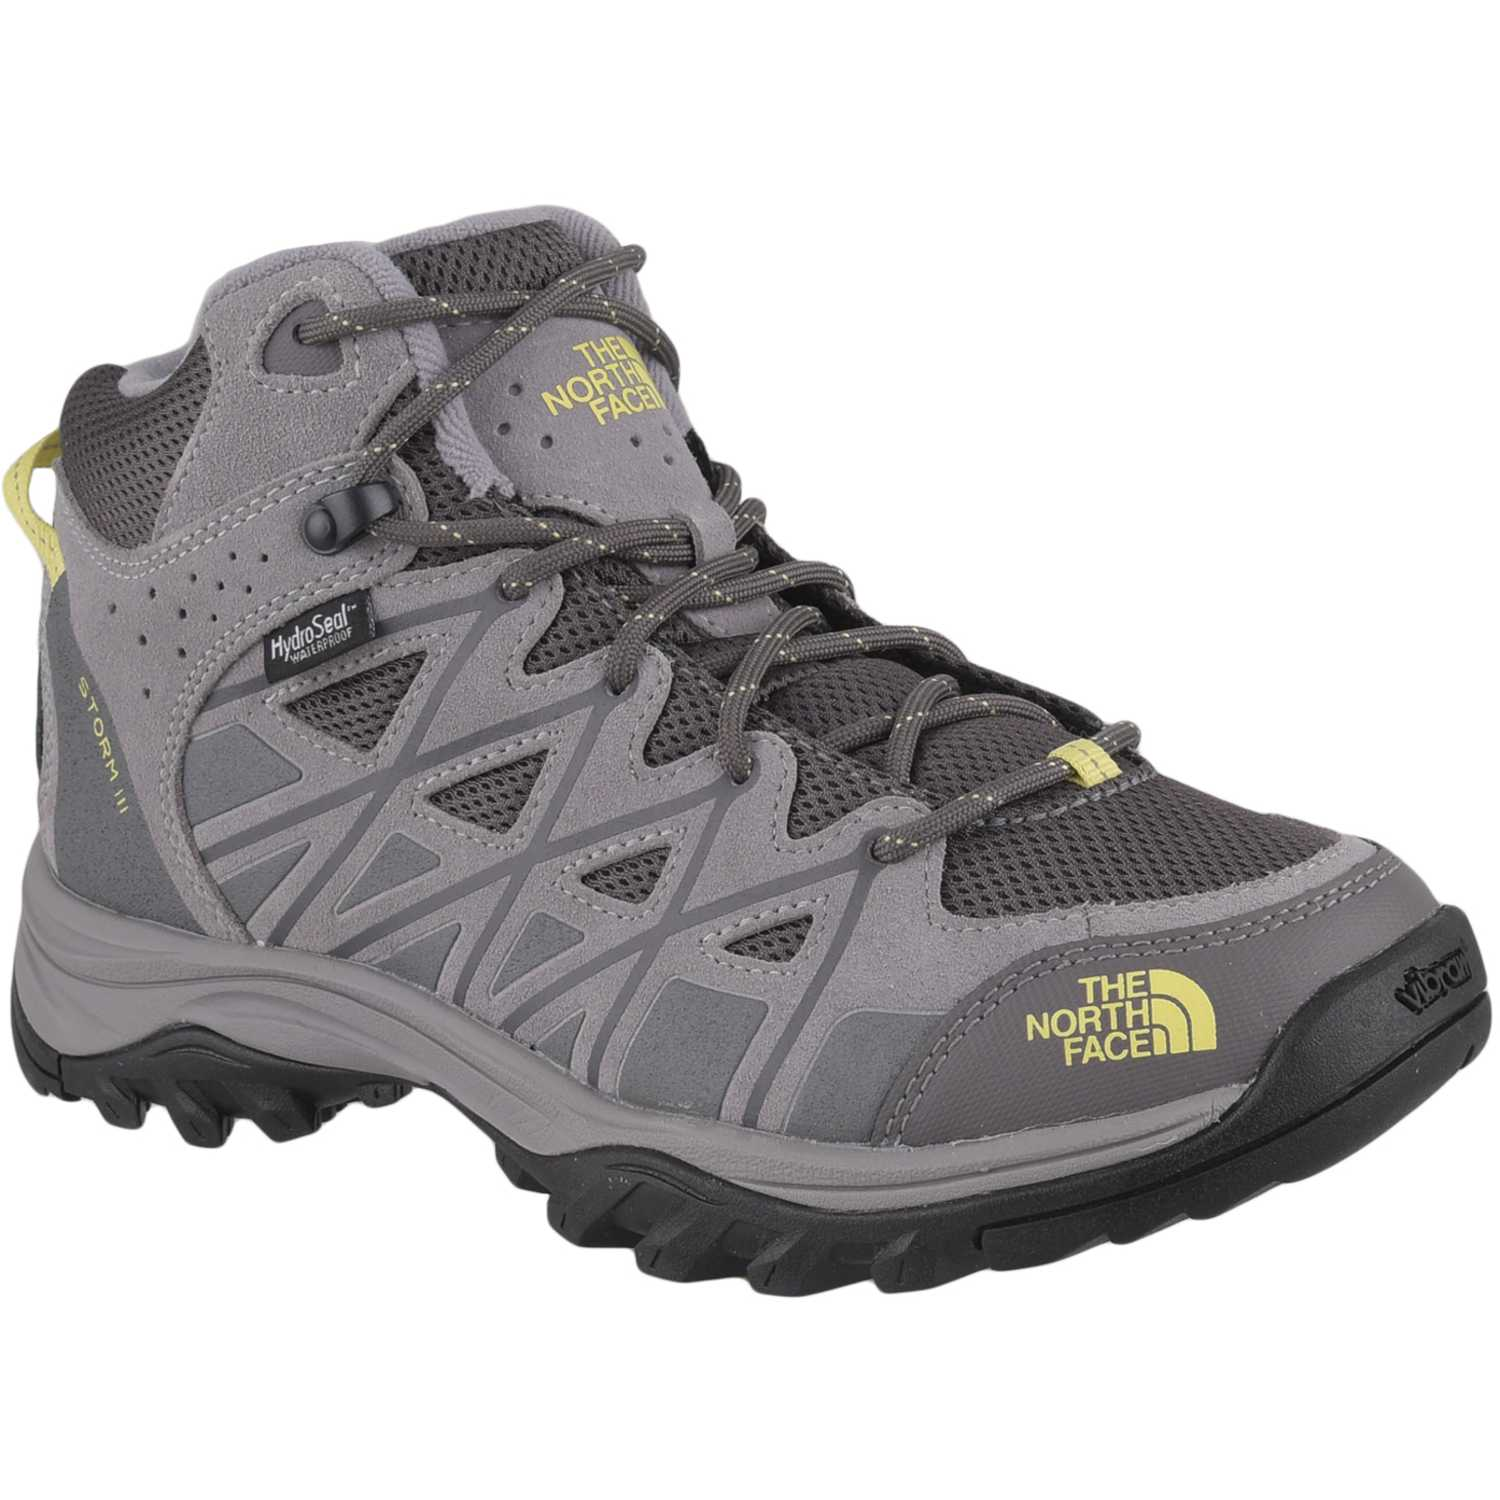 Zapatilla de Mujer The North Face Gris / amarillo w storm iii mid wp